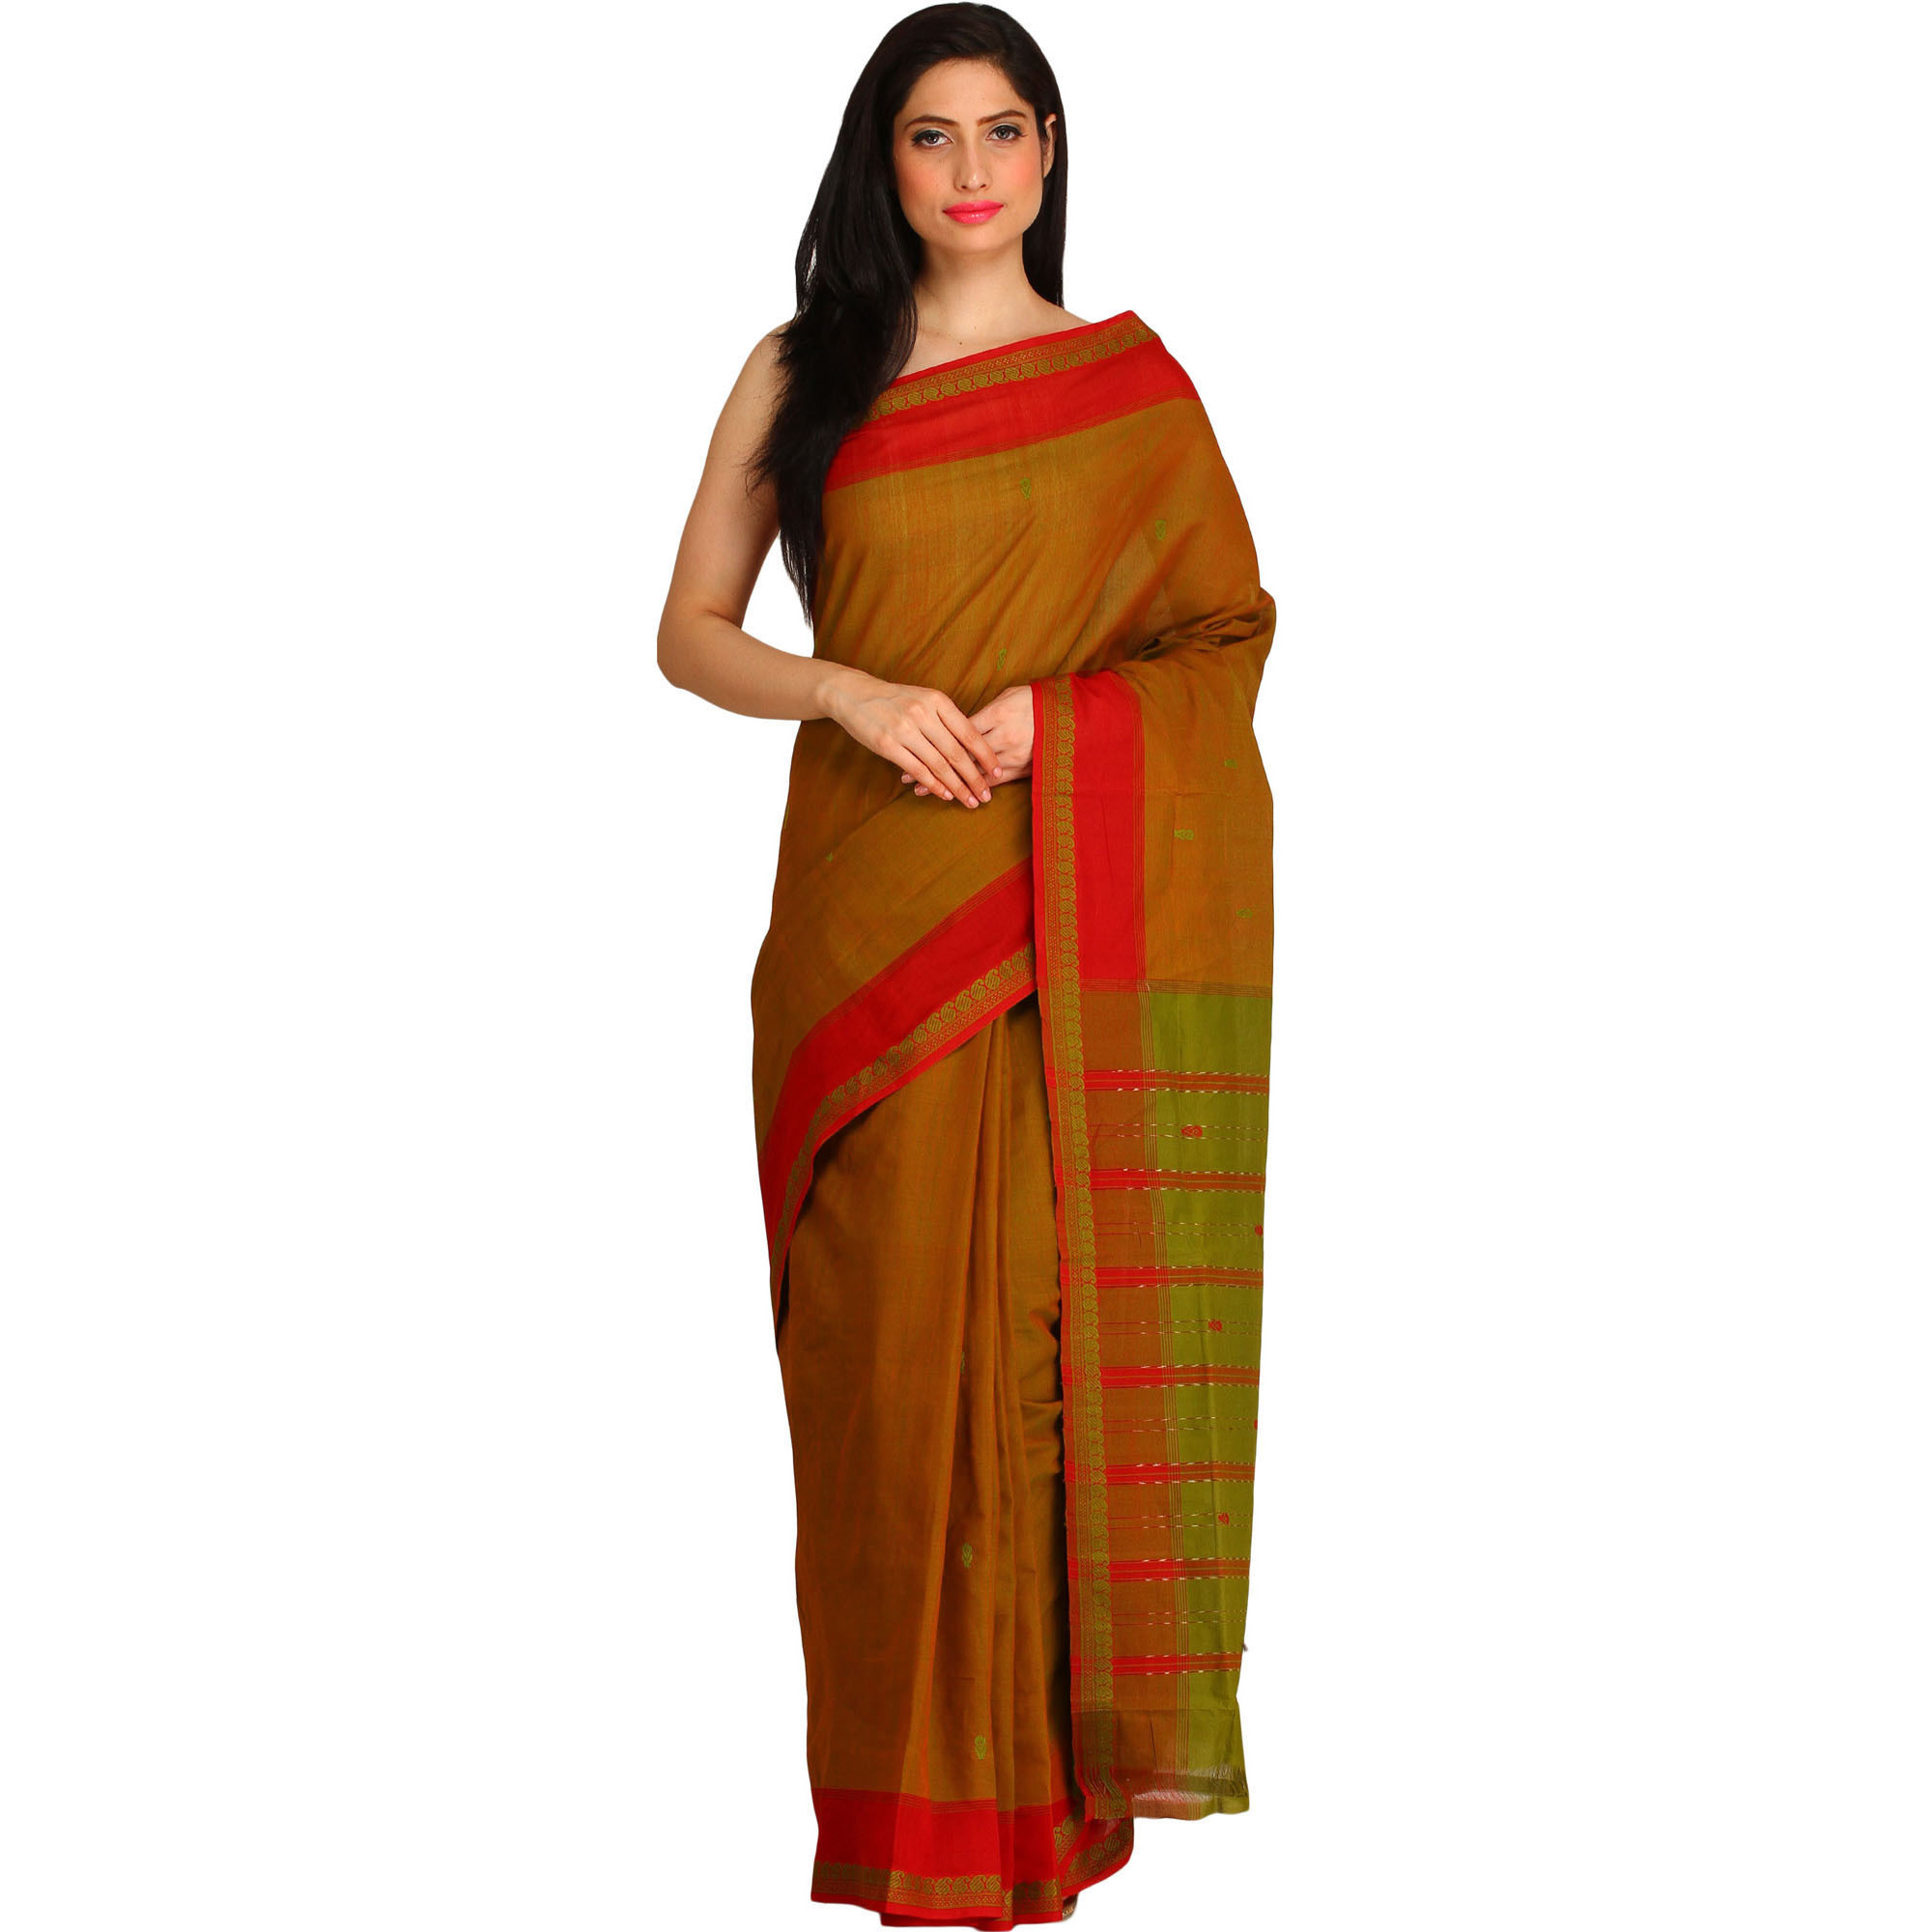 Bronze-Brown Sari with Woven Paisleys on Border and Striped Pallu